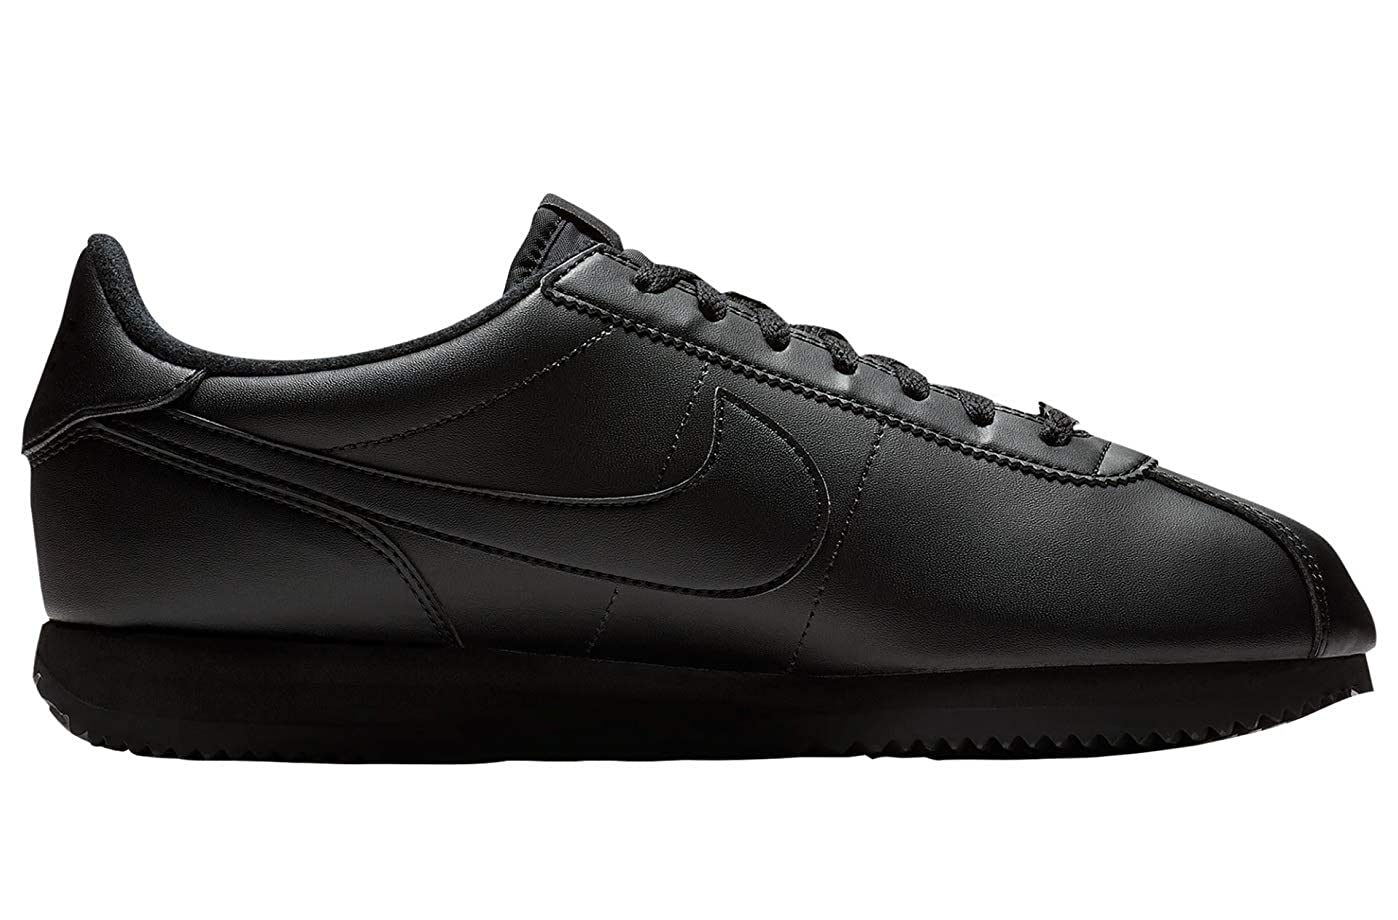 separation shoes 3d07a 0da0d Amazon.com   Nike Men s Classic Cortez Leather Casual Shoe   Fashion  Sneakers